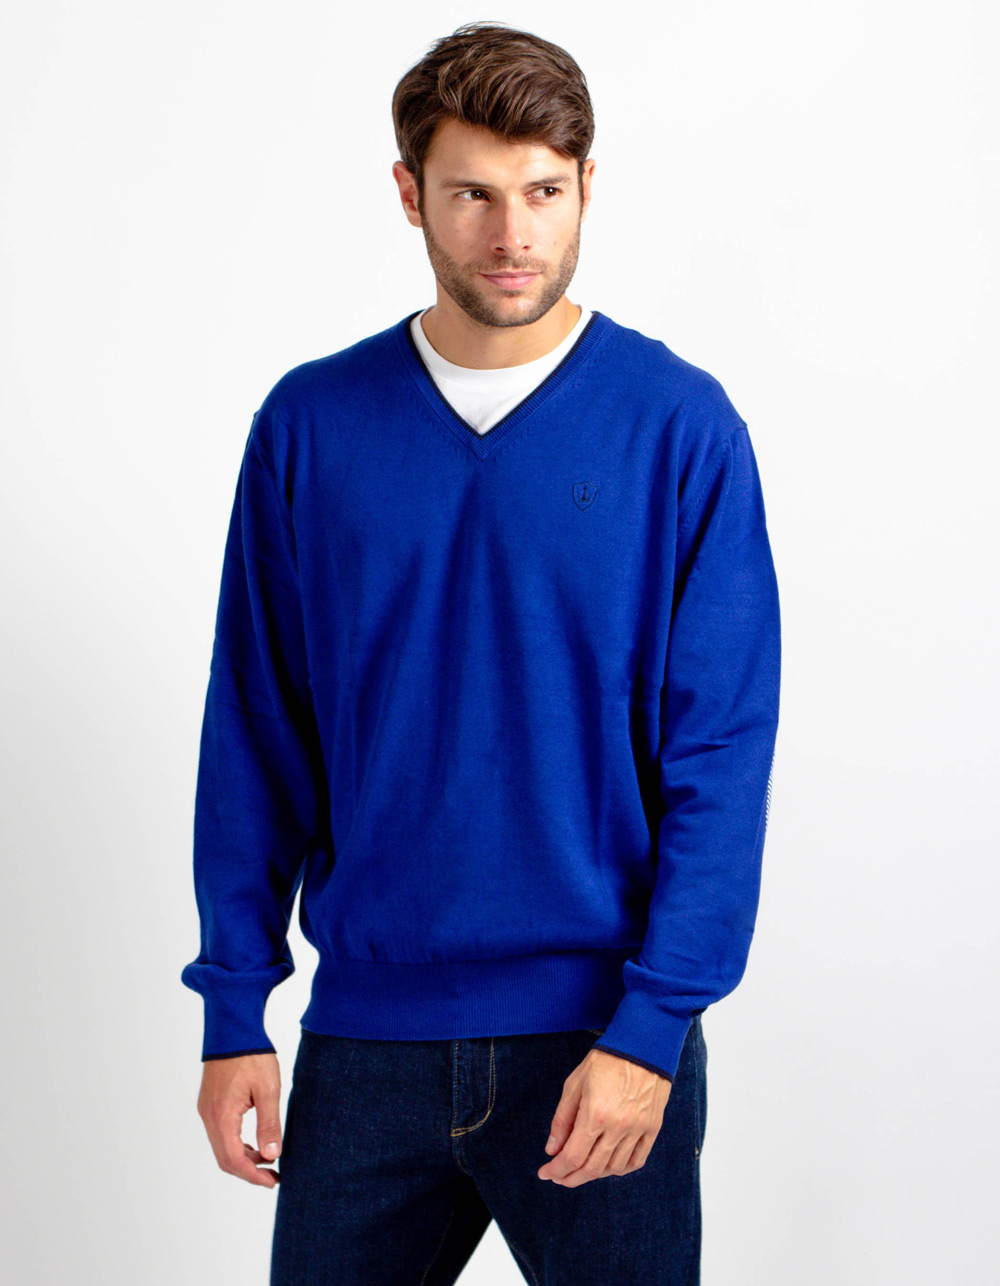 Navy blue V-Neck sweater